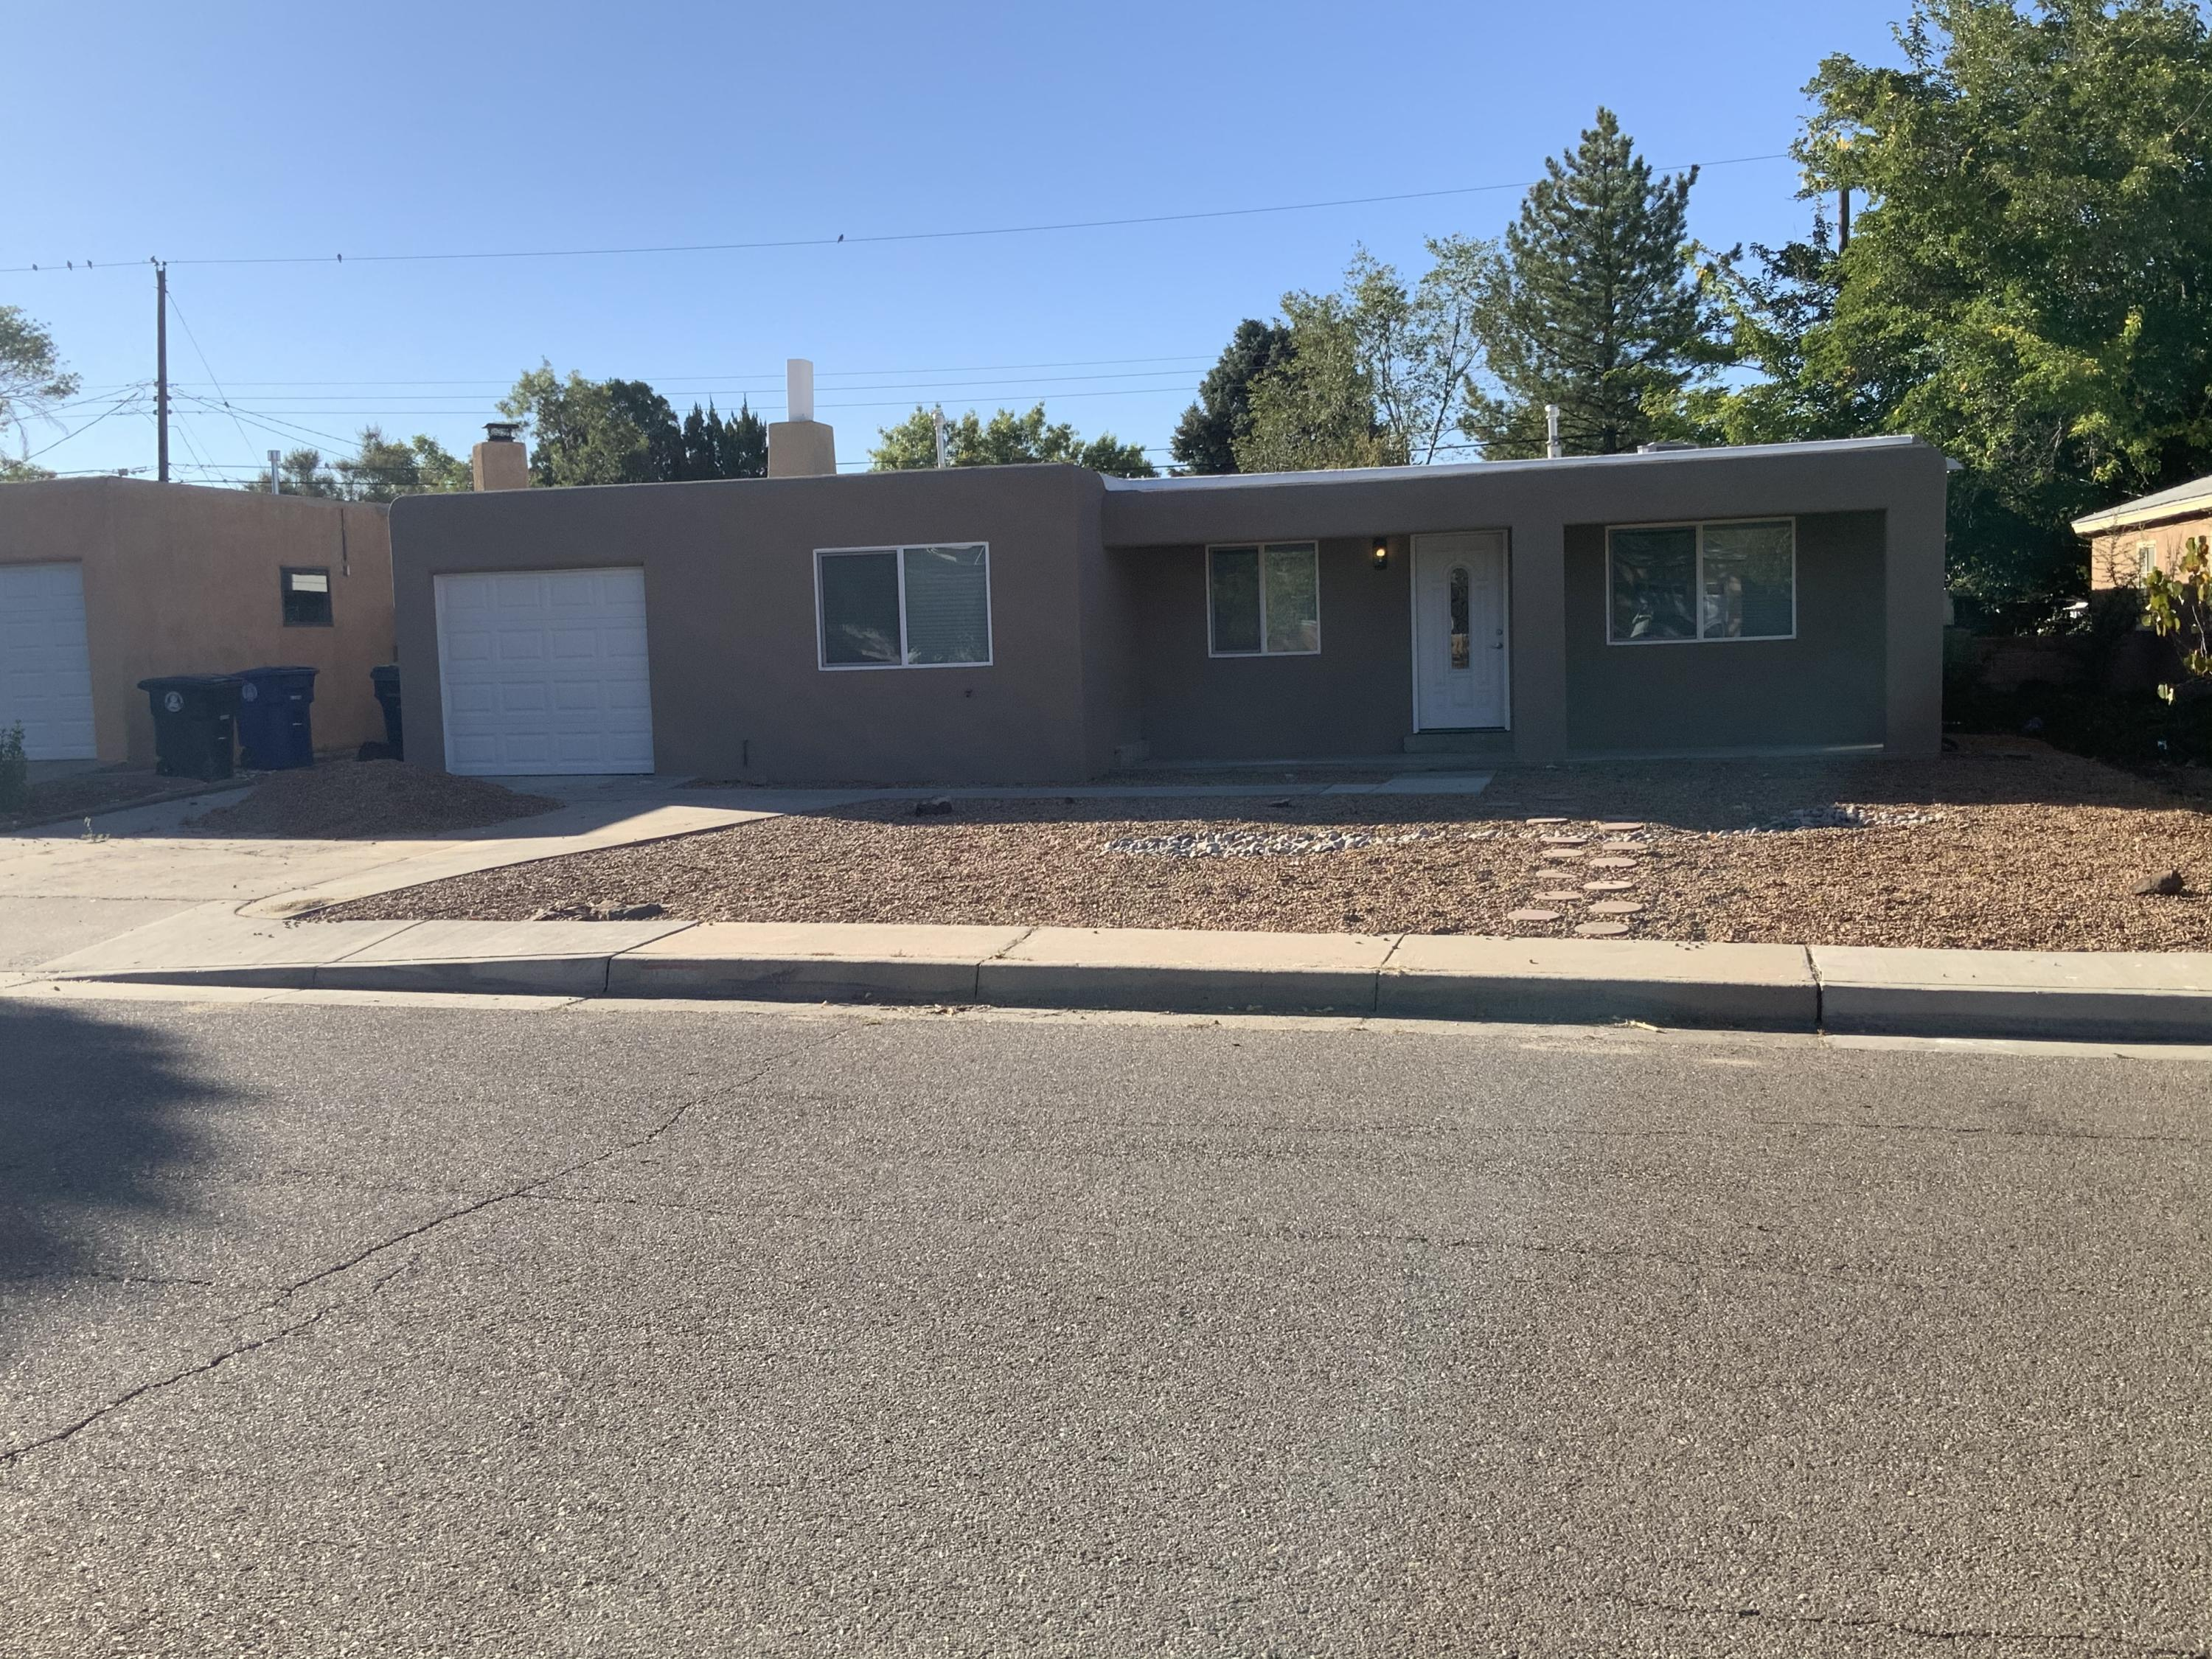 Another amazing remodel by Rio Grande!  EVERYTHING in this home has been freshly updated and it is ready to move into today!!! Very modern, contemporary colors and style throughout. NEW: TPO Roof, Windows, Water Heater, Synthetic Stucco, HVAC, Paint, Stainless Appliance Package, Electrical & Plumbing Fixtures, Hardware &Ceiling Fans.  There is nothing in this home left to do but move in!  Come see this new one today, it will not last long.